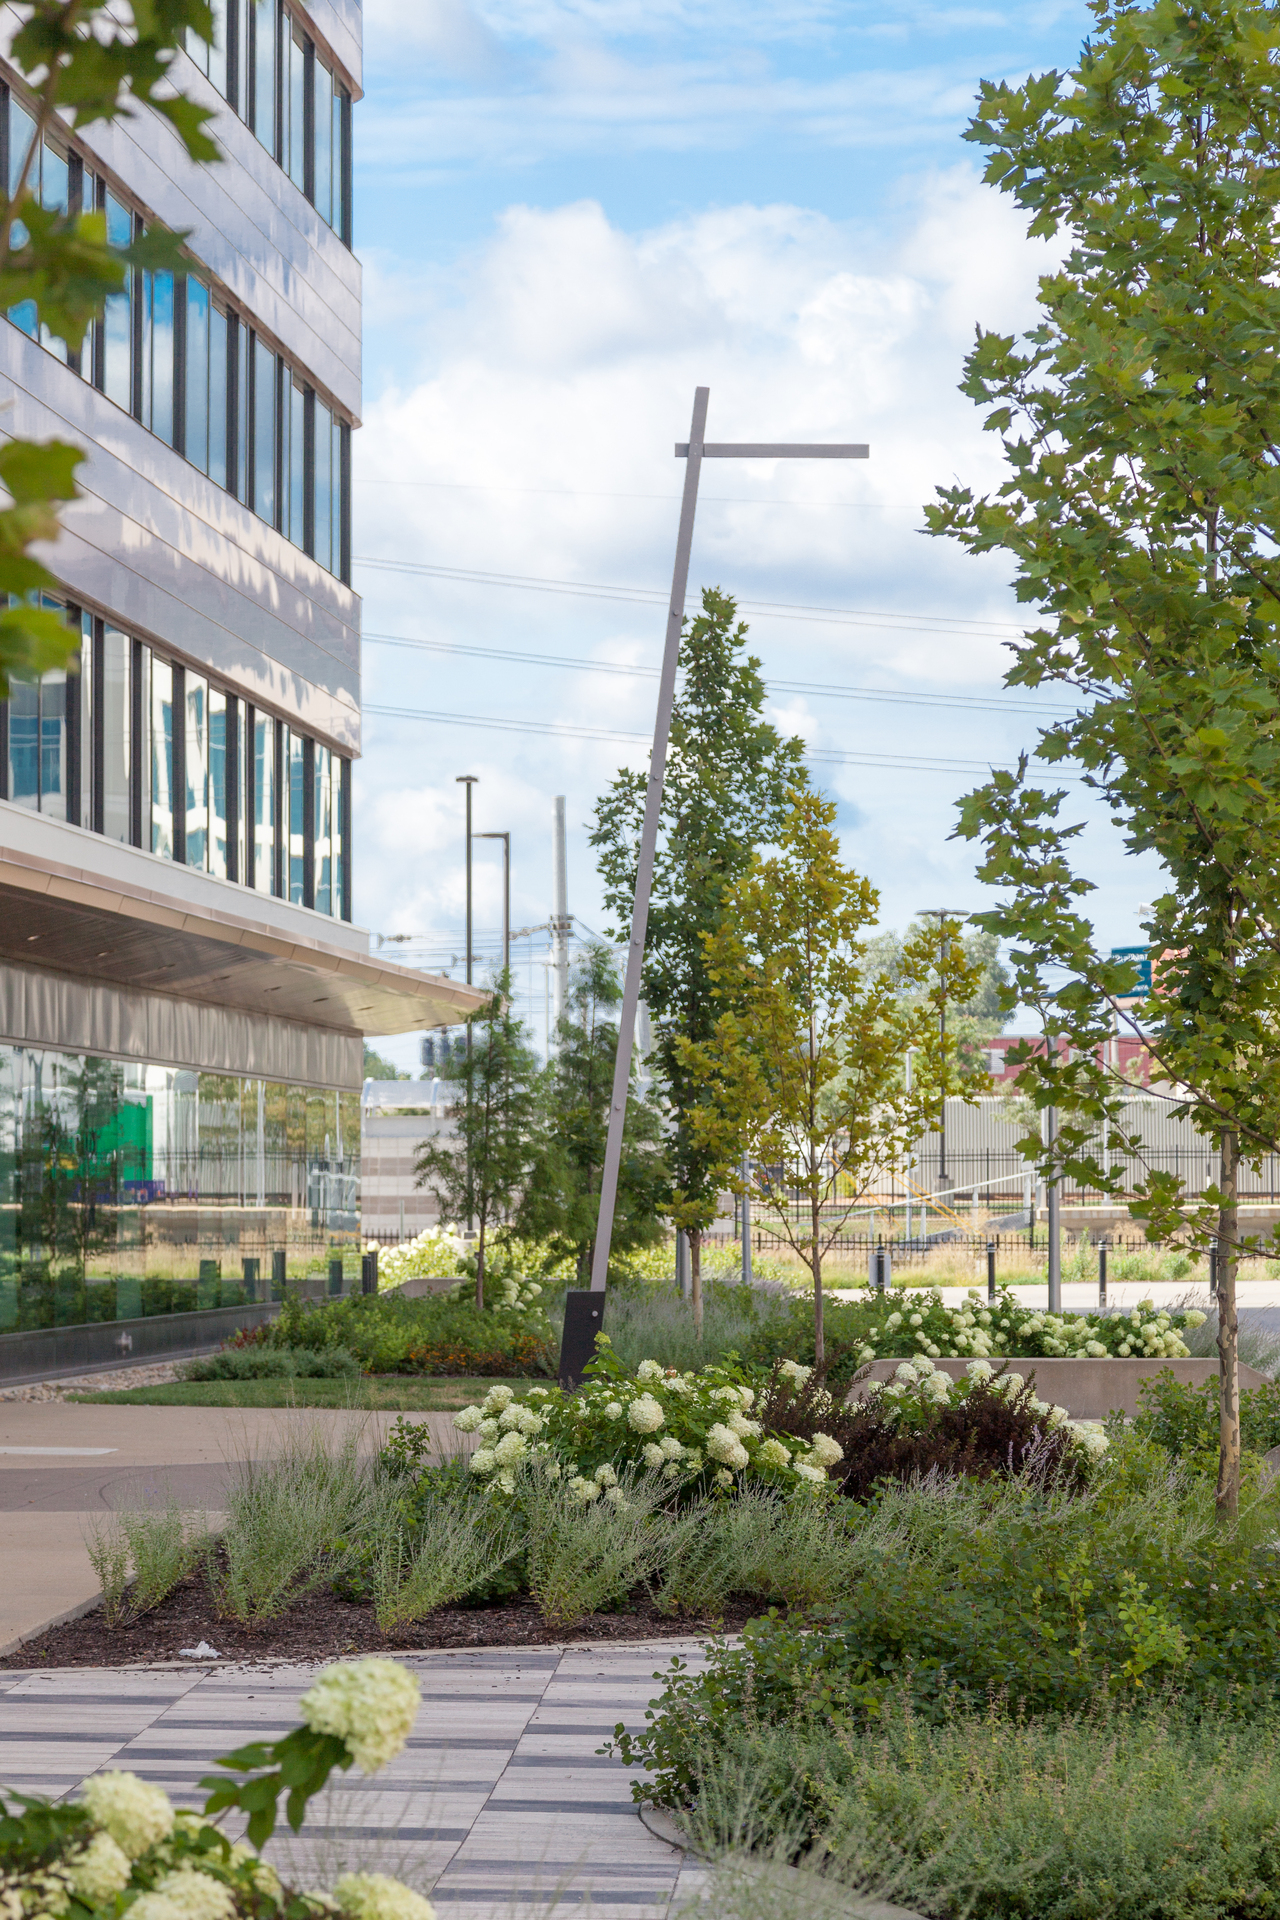 The outdoor public spaces at 4220 Duncan Avenue features our Tandem Tilt pole to illuminate the pedestrian walkways and sidewalks.